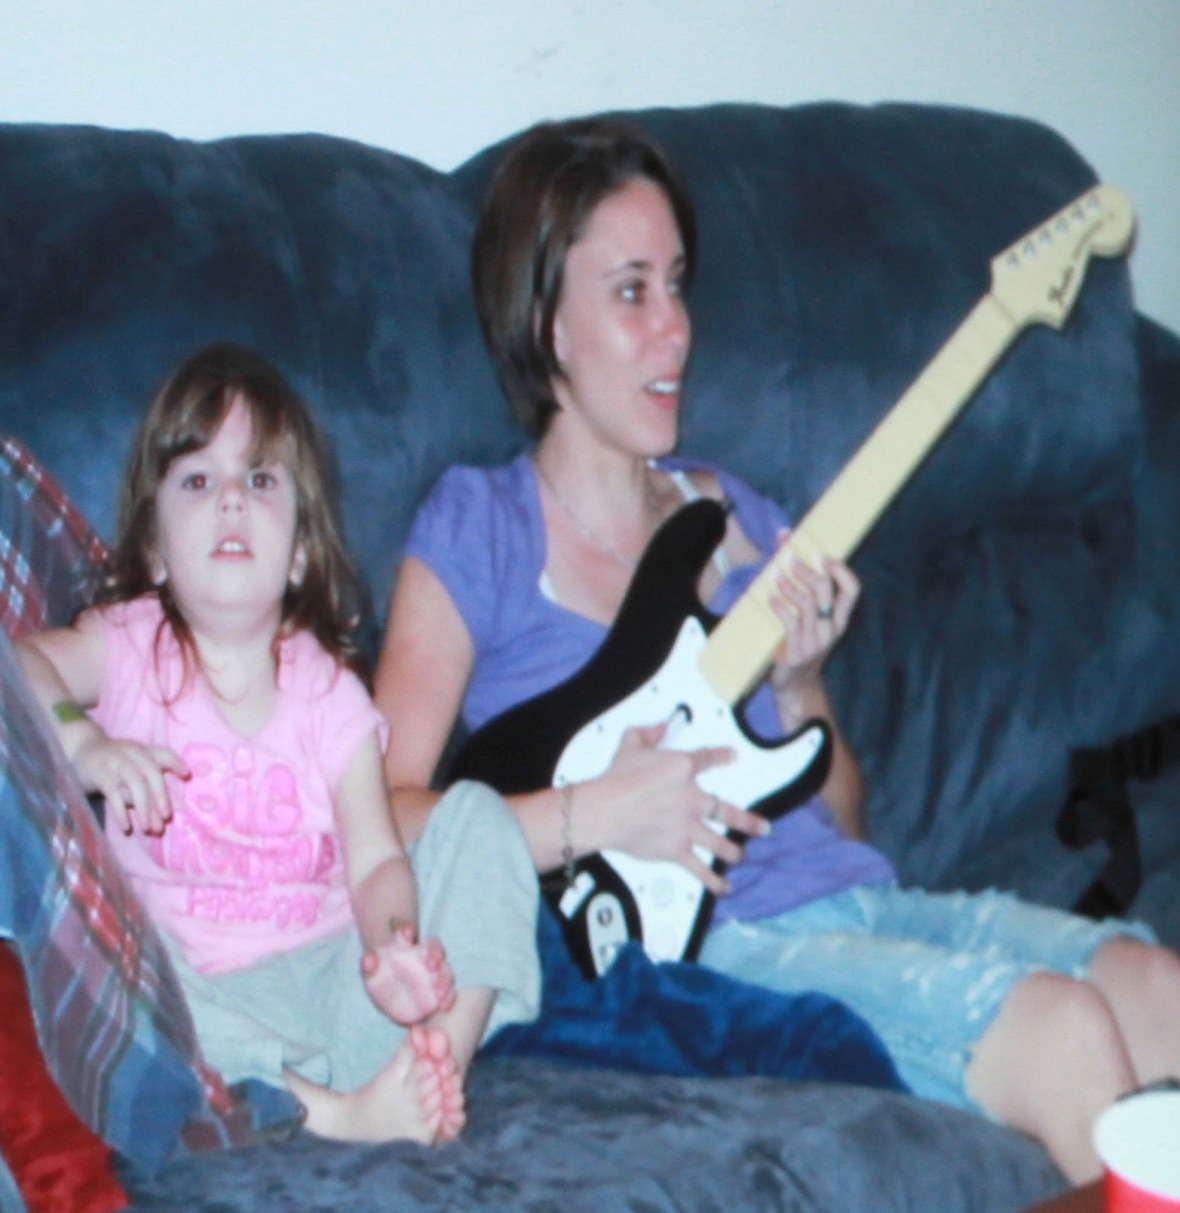 casey anthony caylee anthony getty images